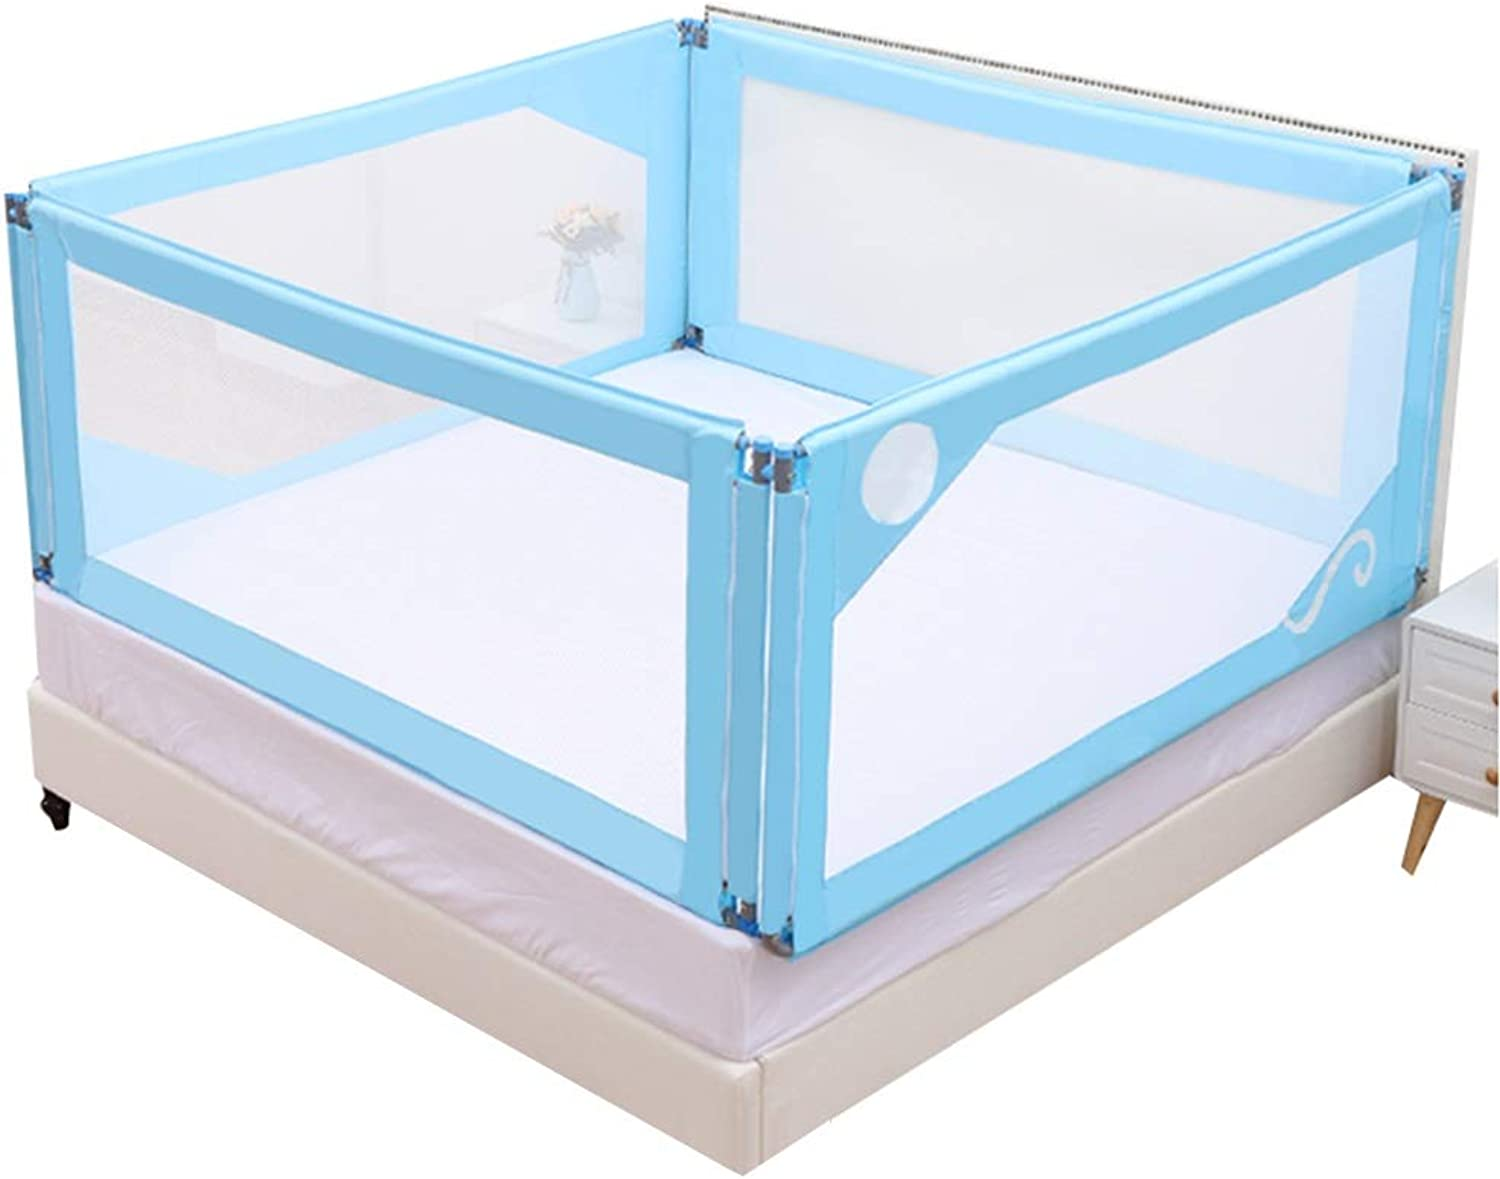 HENGYUSBed rail For Kids 3 Sets Of Metal Tube Stable Grid Breathable Environmental Predection Healthy, 4 Sizes, 3 colors (color   bluee, Size   190x180x76cm)